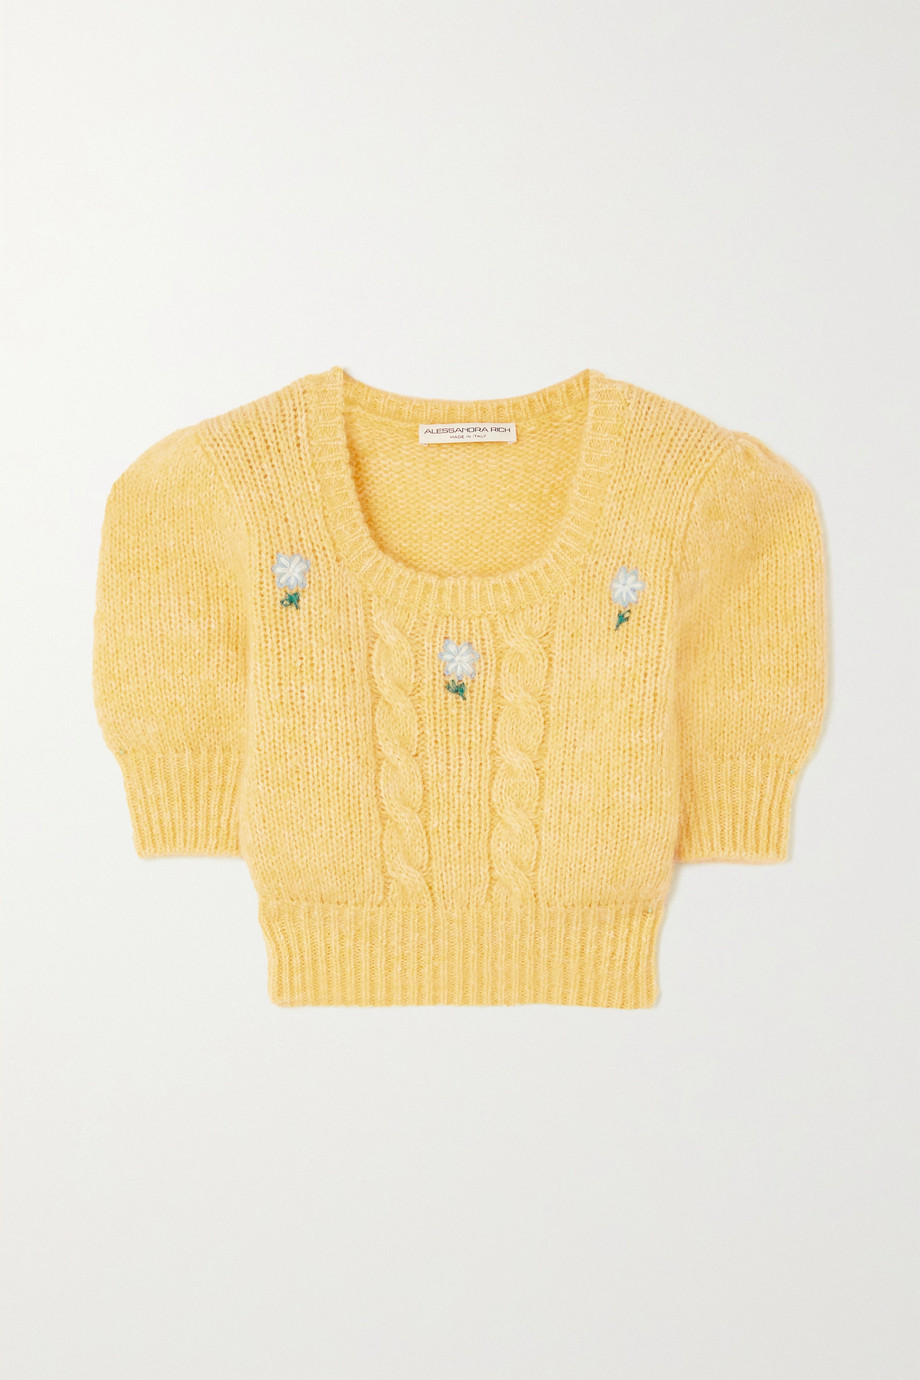 ALESSANDRA RICH Cropped embroidered cable-knit sweater